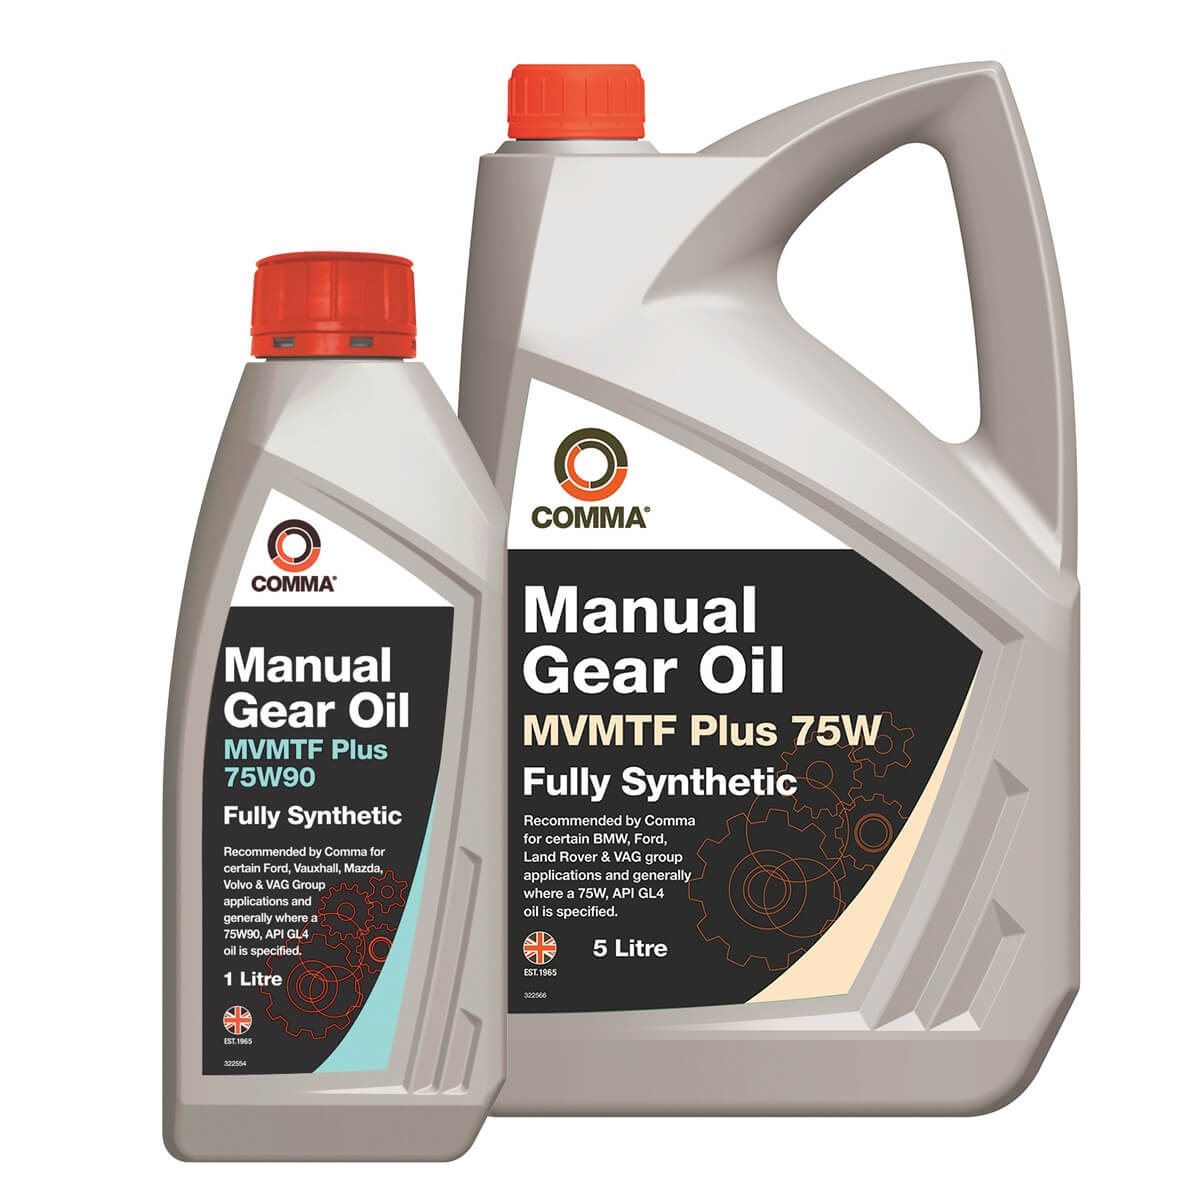 AUDI S8 Manual Transmission Oil